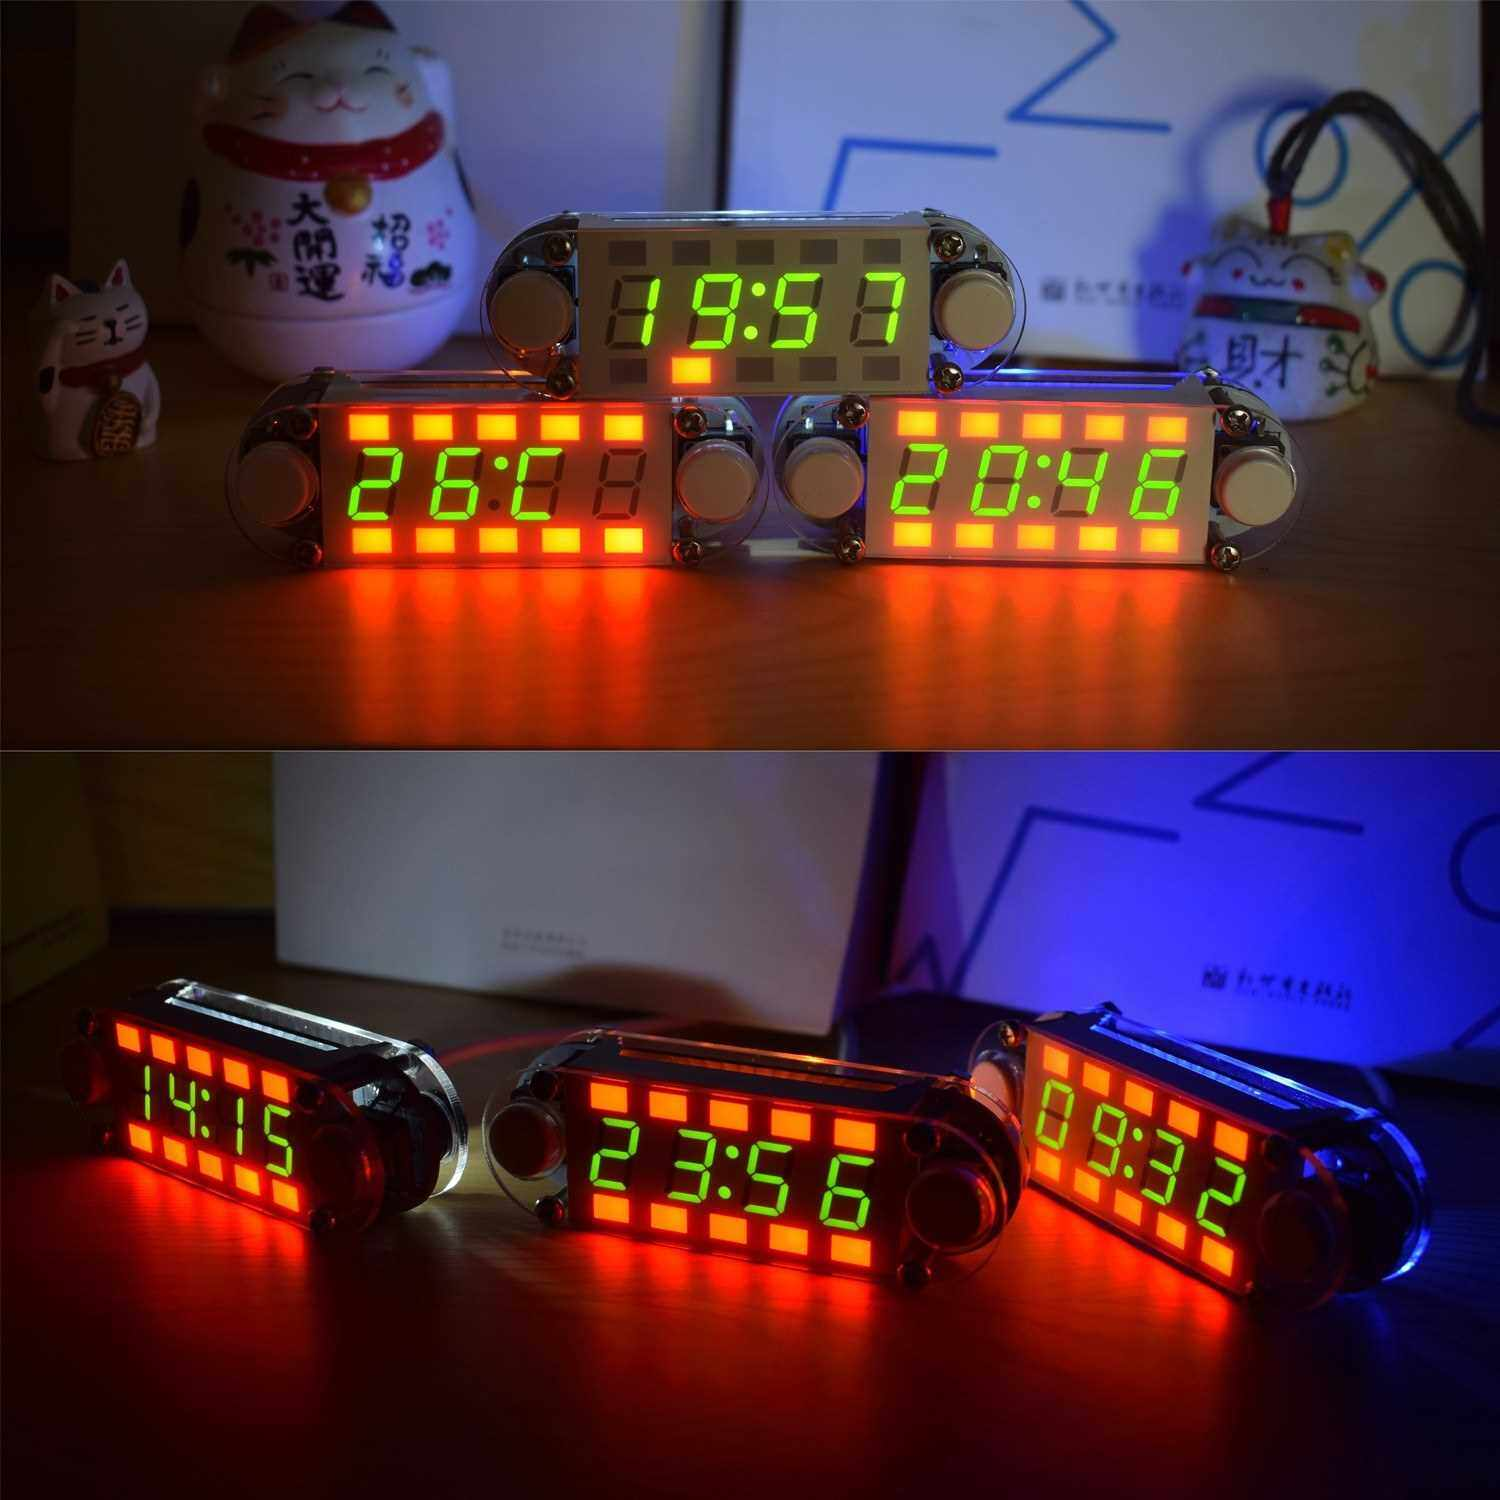 4-Digit Digital Clock DIY Kit LED Mixed Color Nixie Tube Table Desk USB-Powered Clock with Countdown Timer Stopwatch Alarm Light for STEM Students Beginner (Standard)